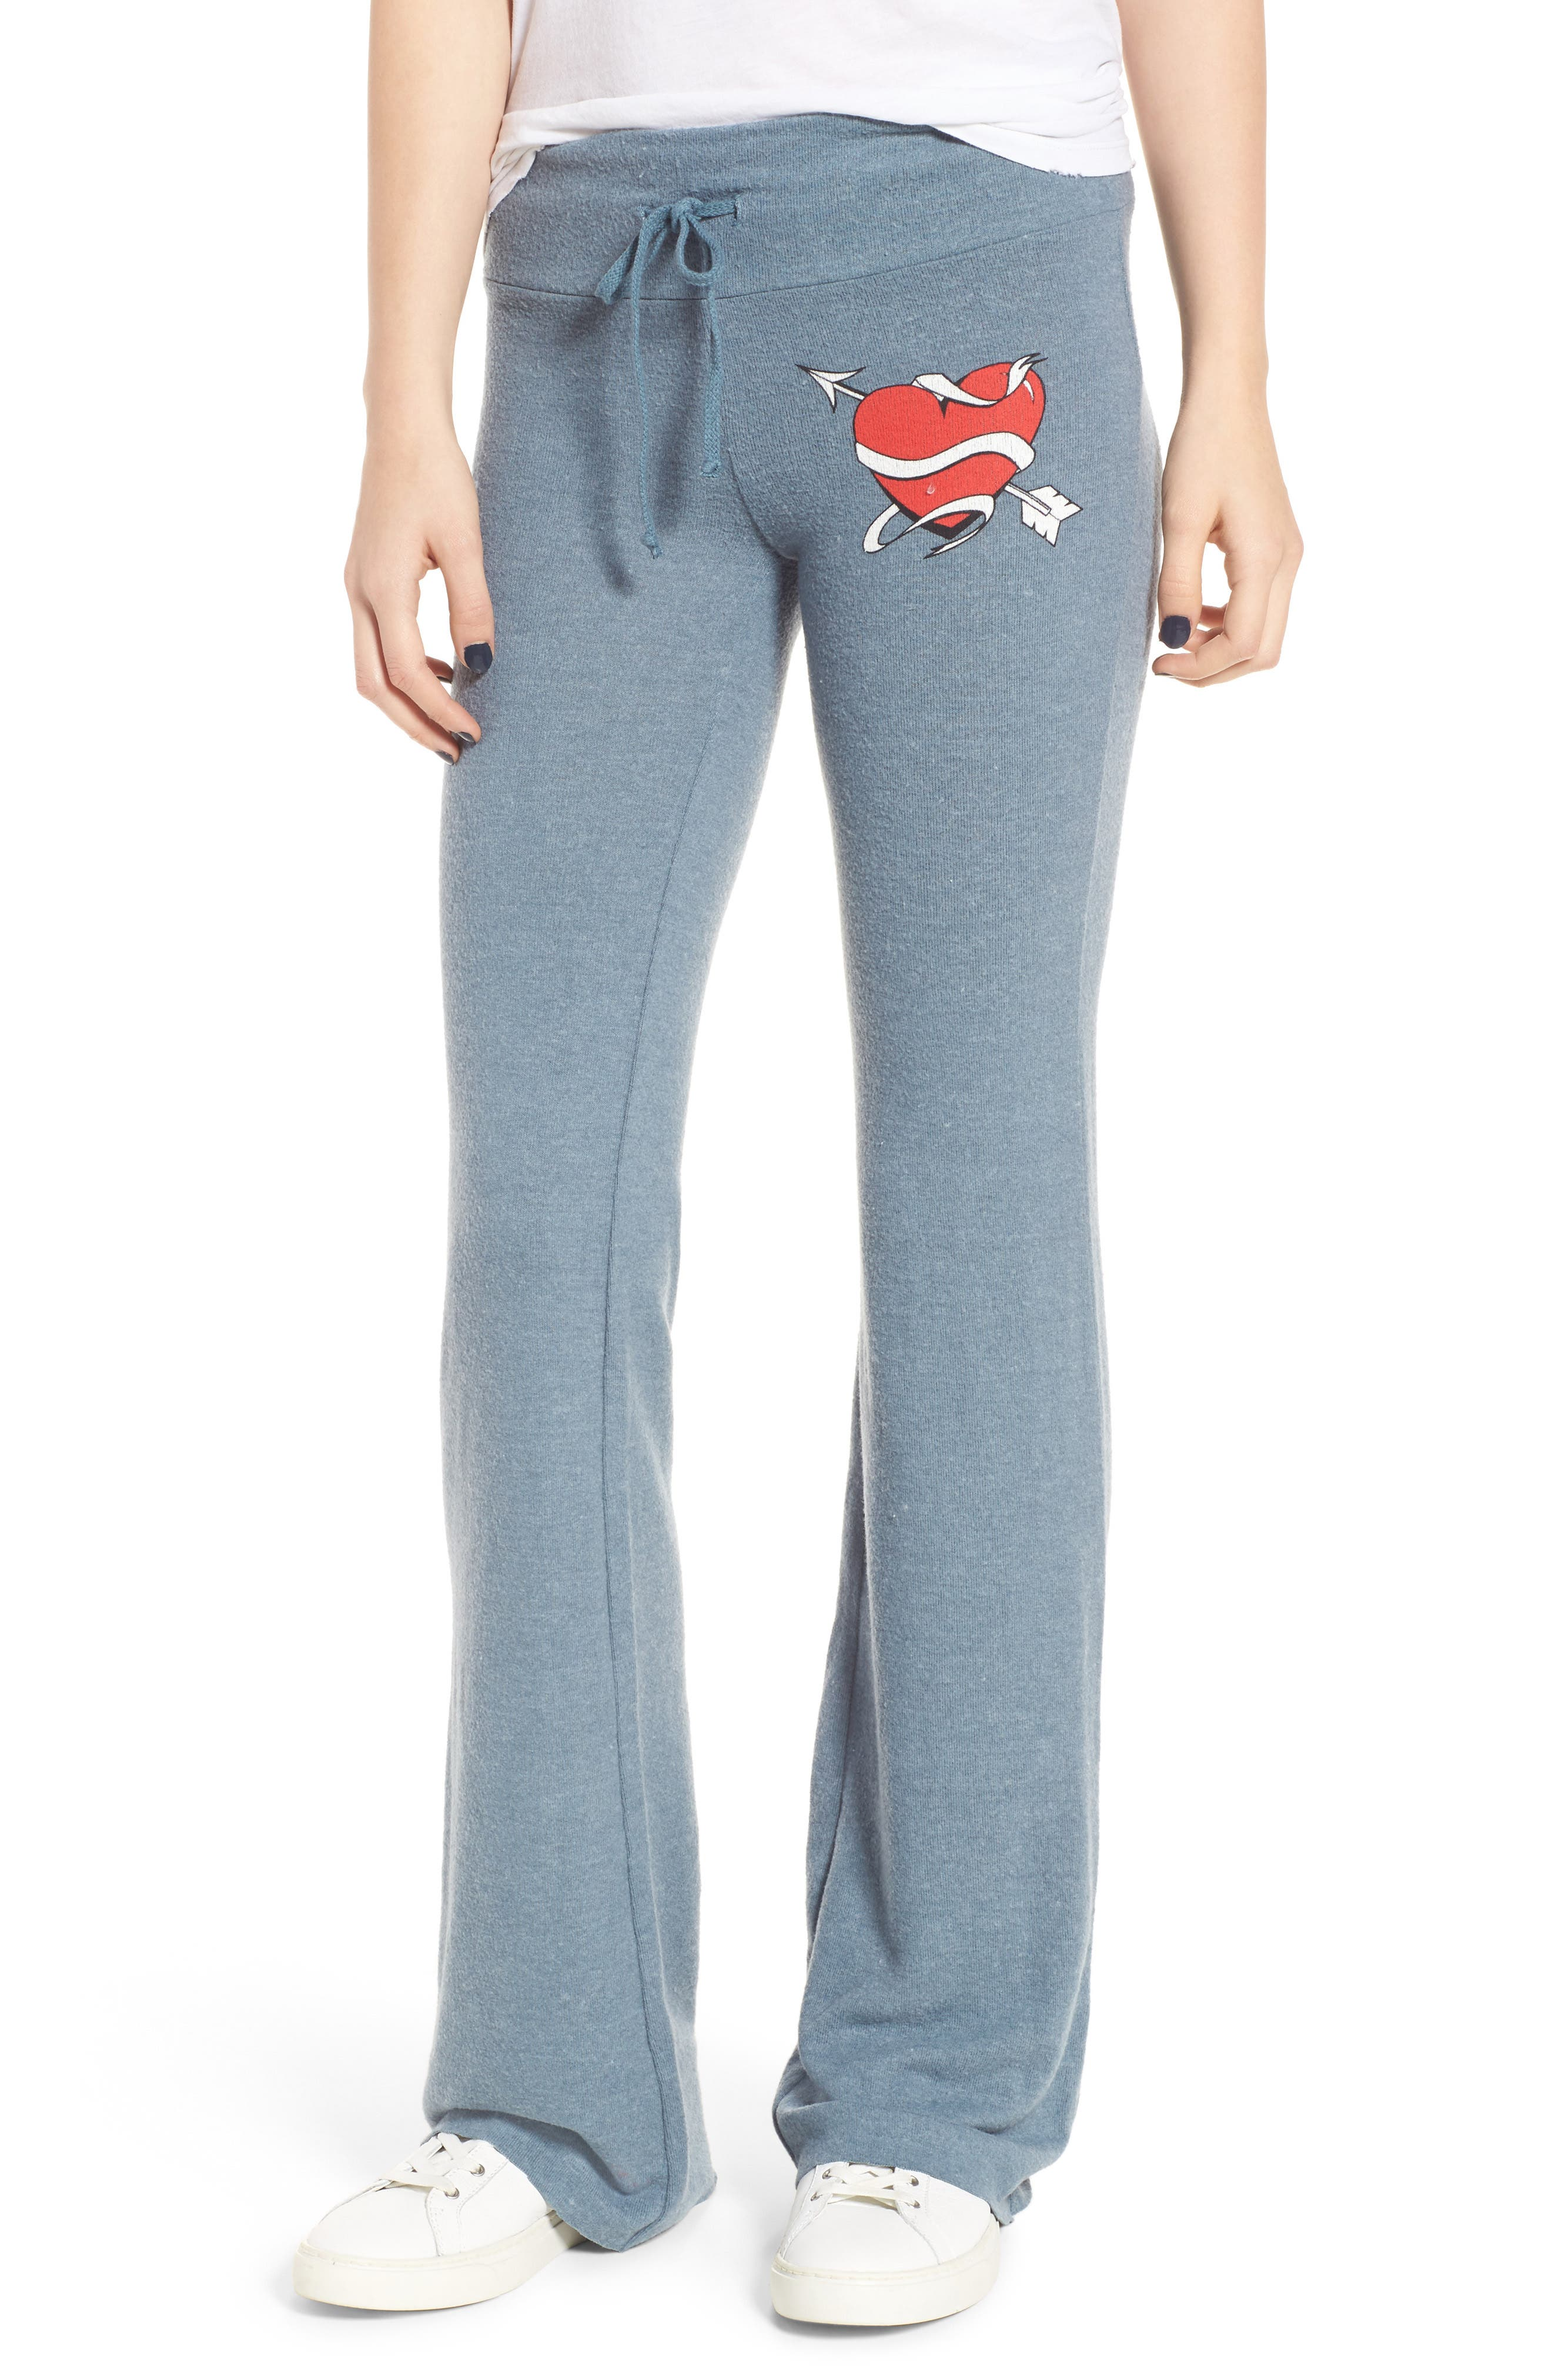 Heart & Arrows Sweatpants,                         Main,                         color, 402